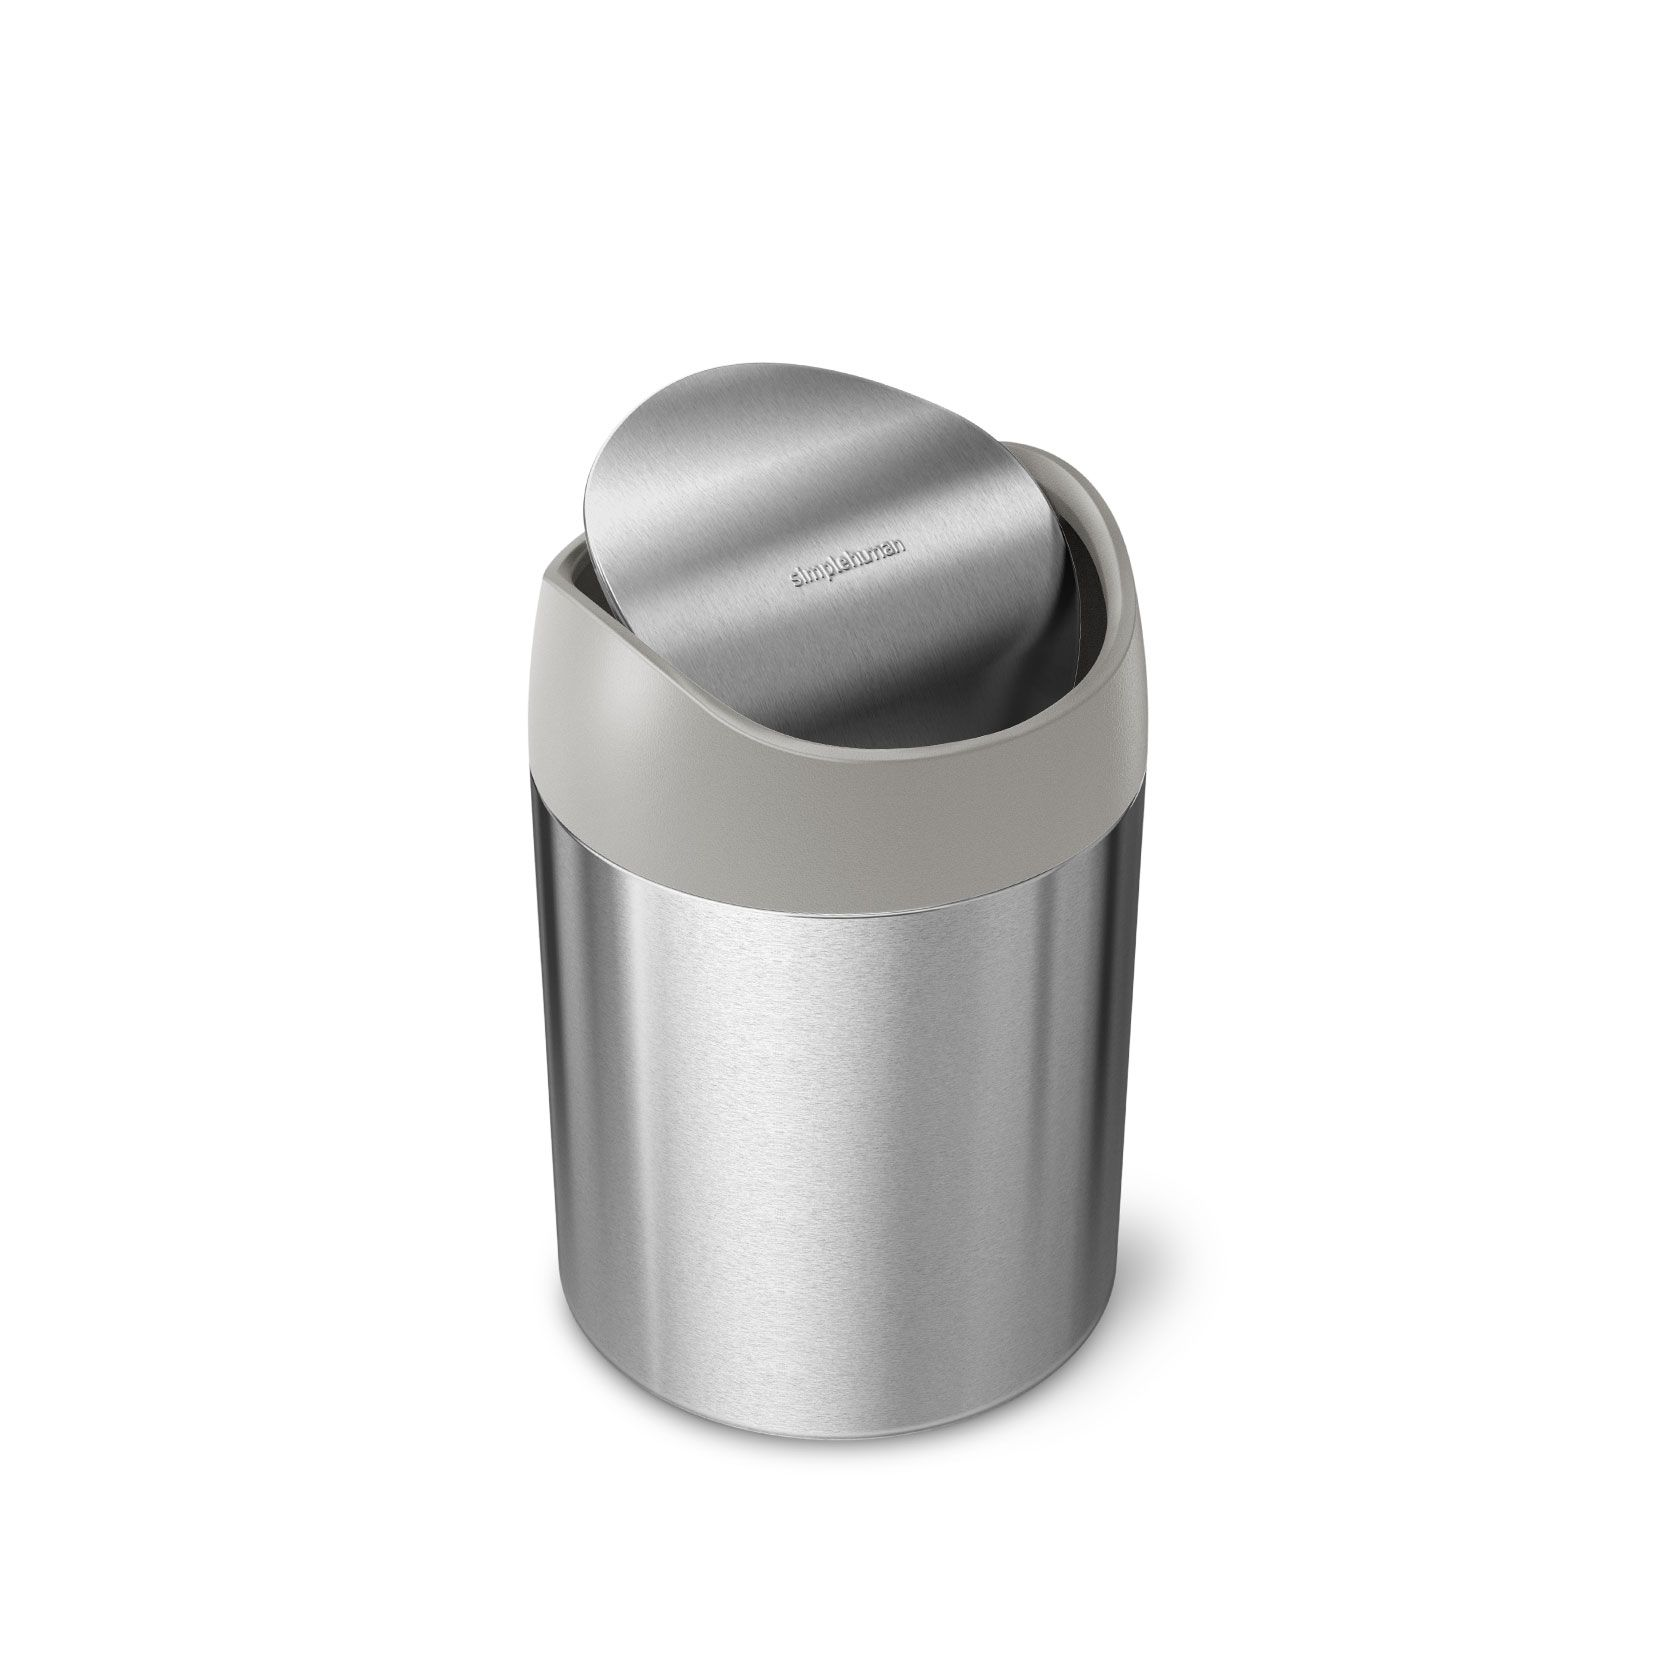 Simplehuman Small Mini Trash Can Brushed Stainless Steel